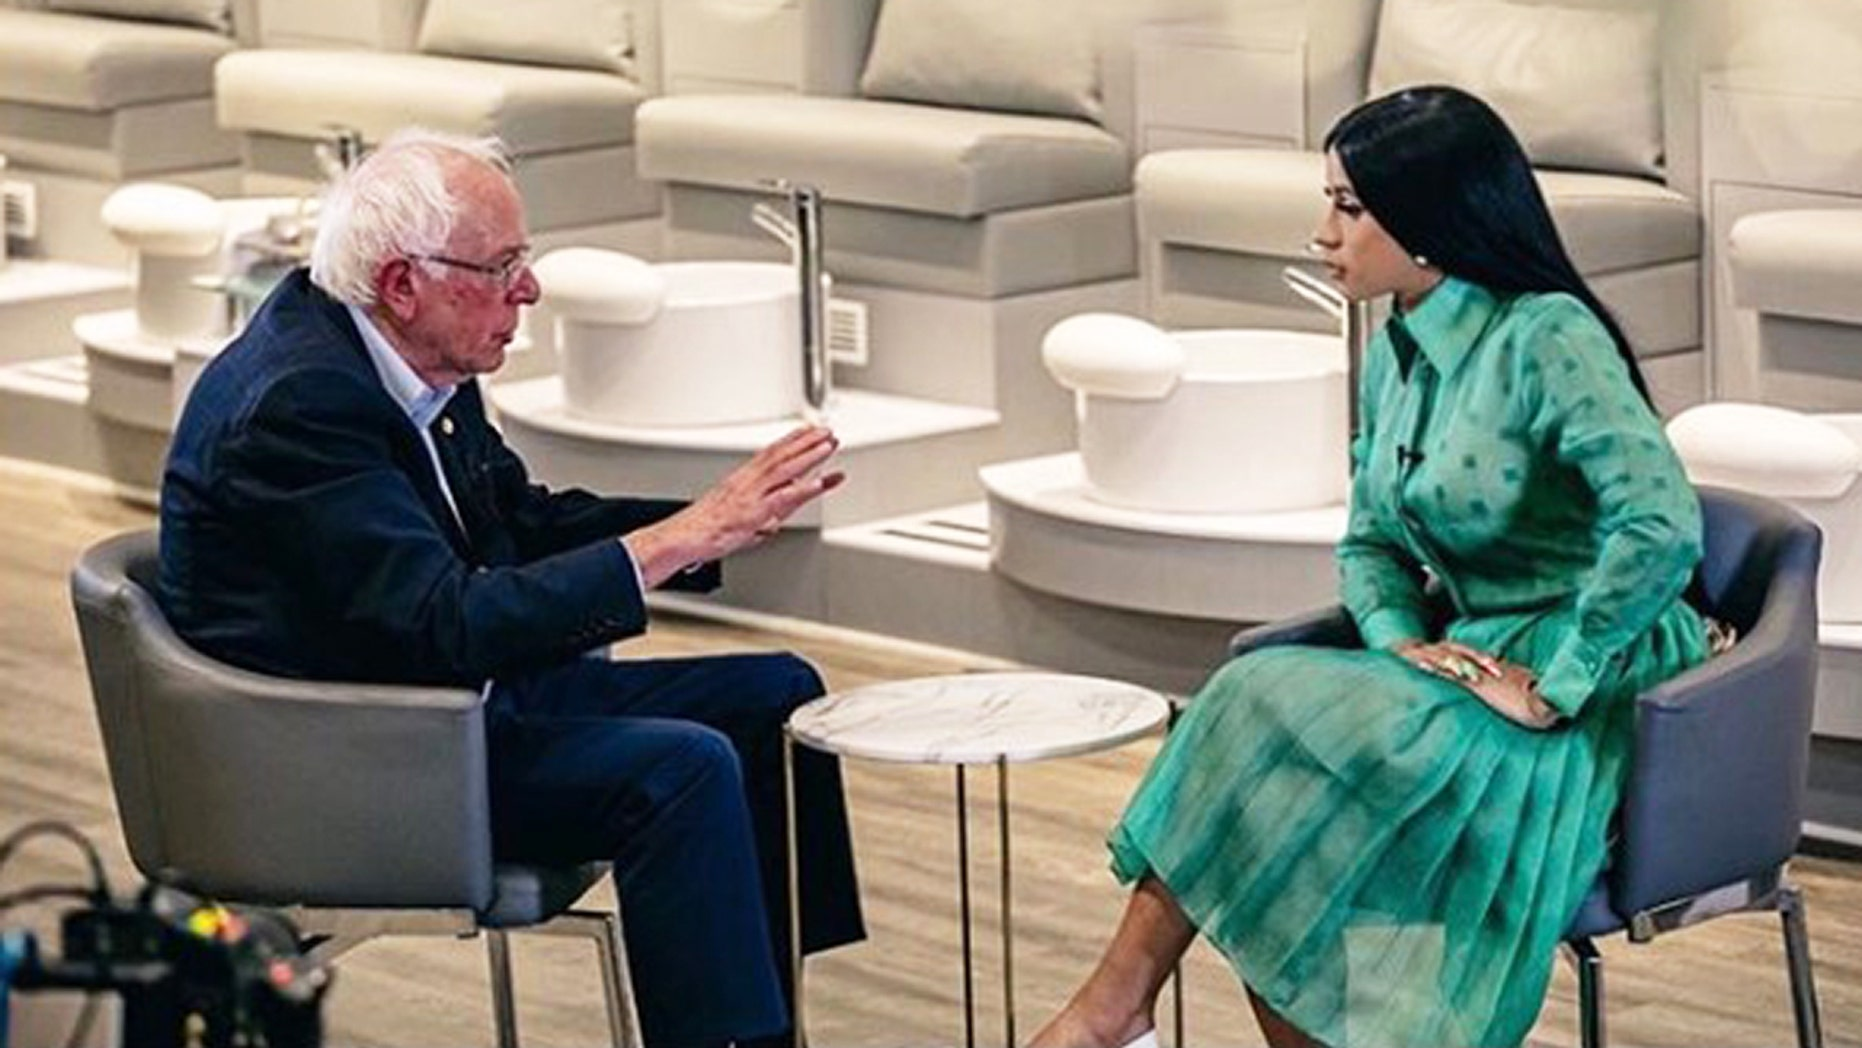 Bernie Sanders Films Campaign Video With Cardi B to Attract Young Voters